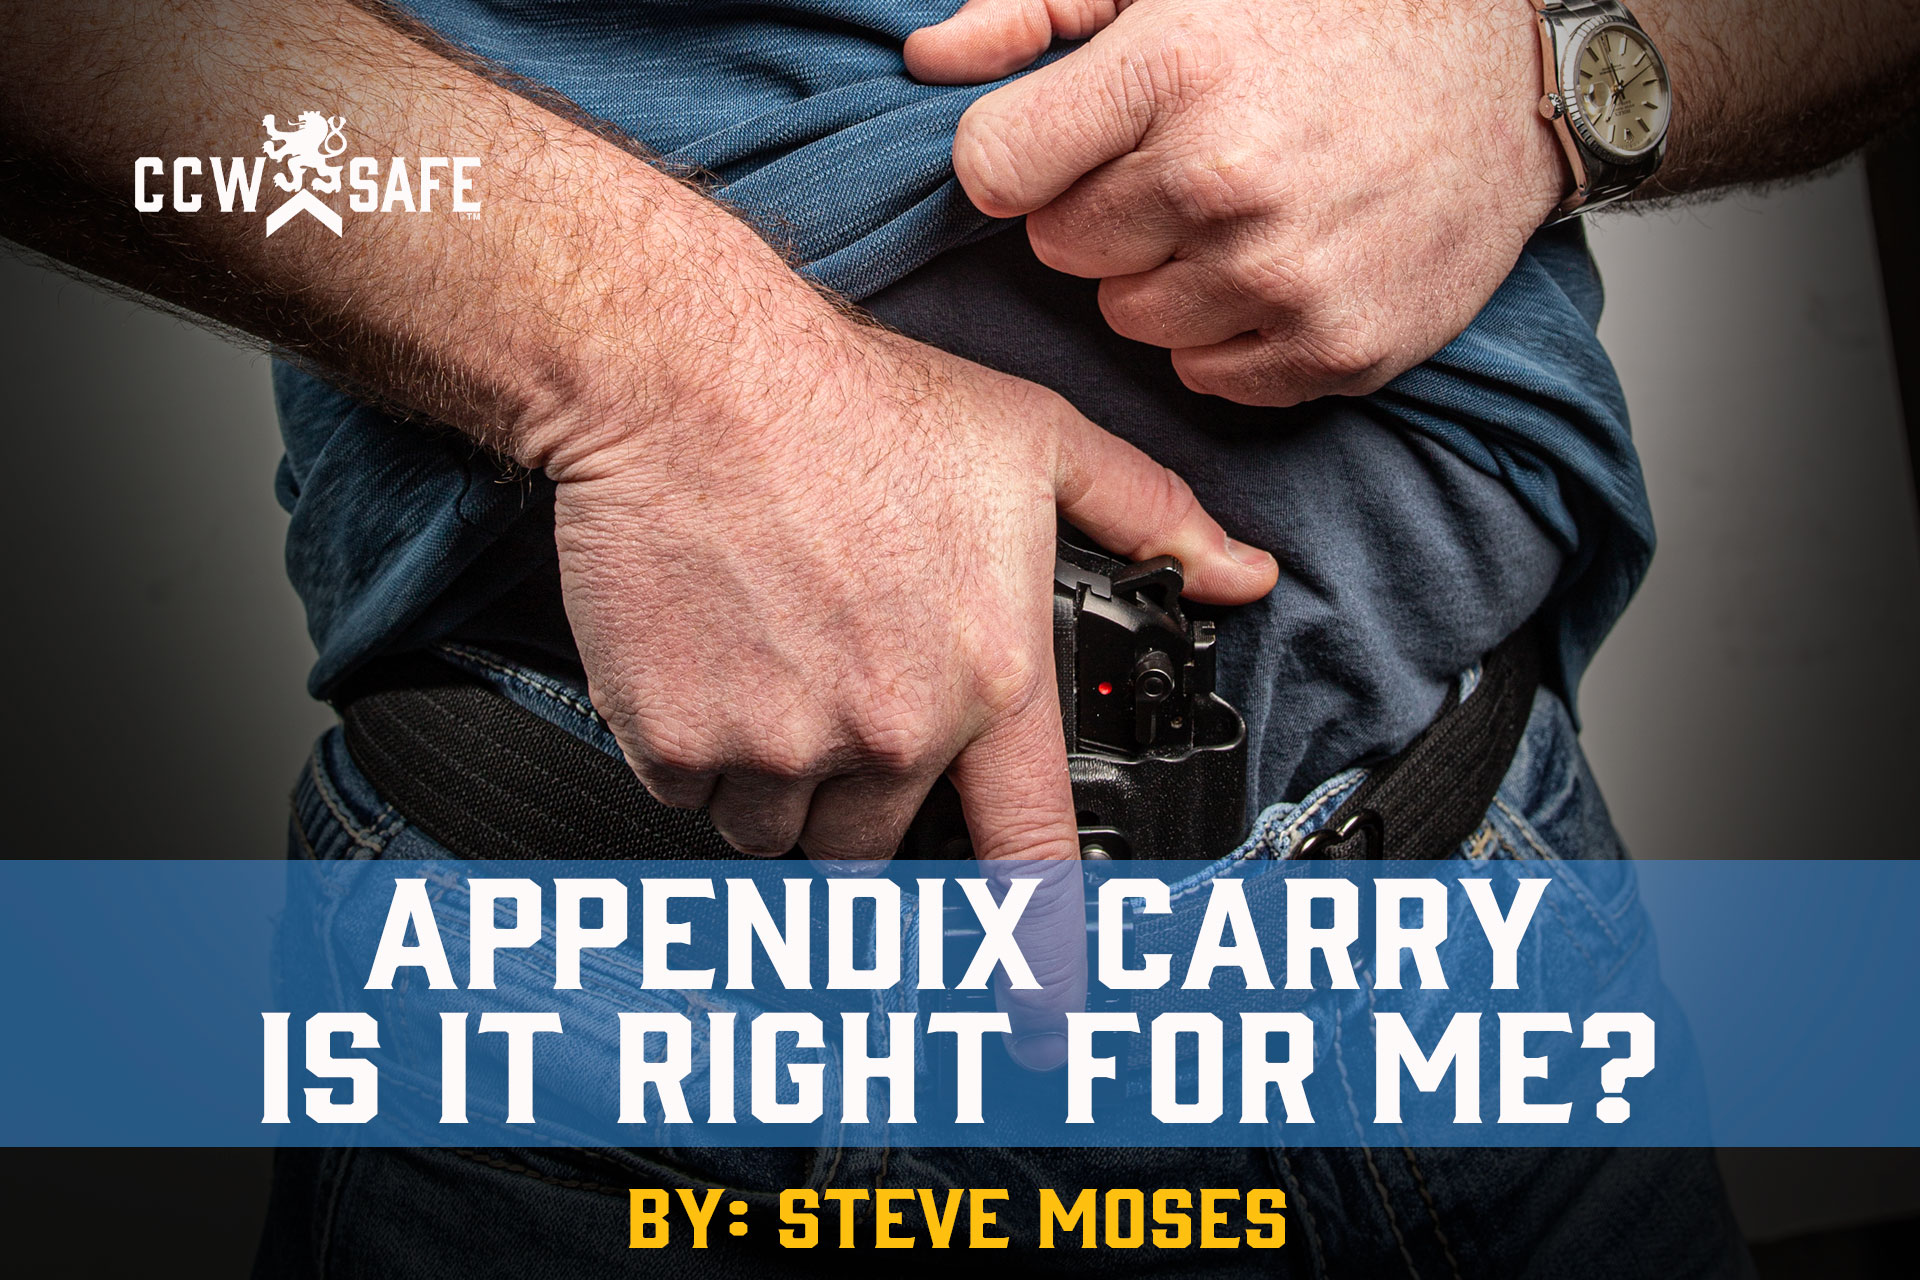 APPENDIX CARRY: IS IT RIGHT FOR ME?